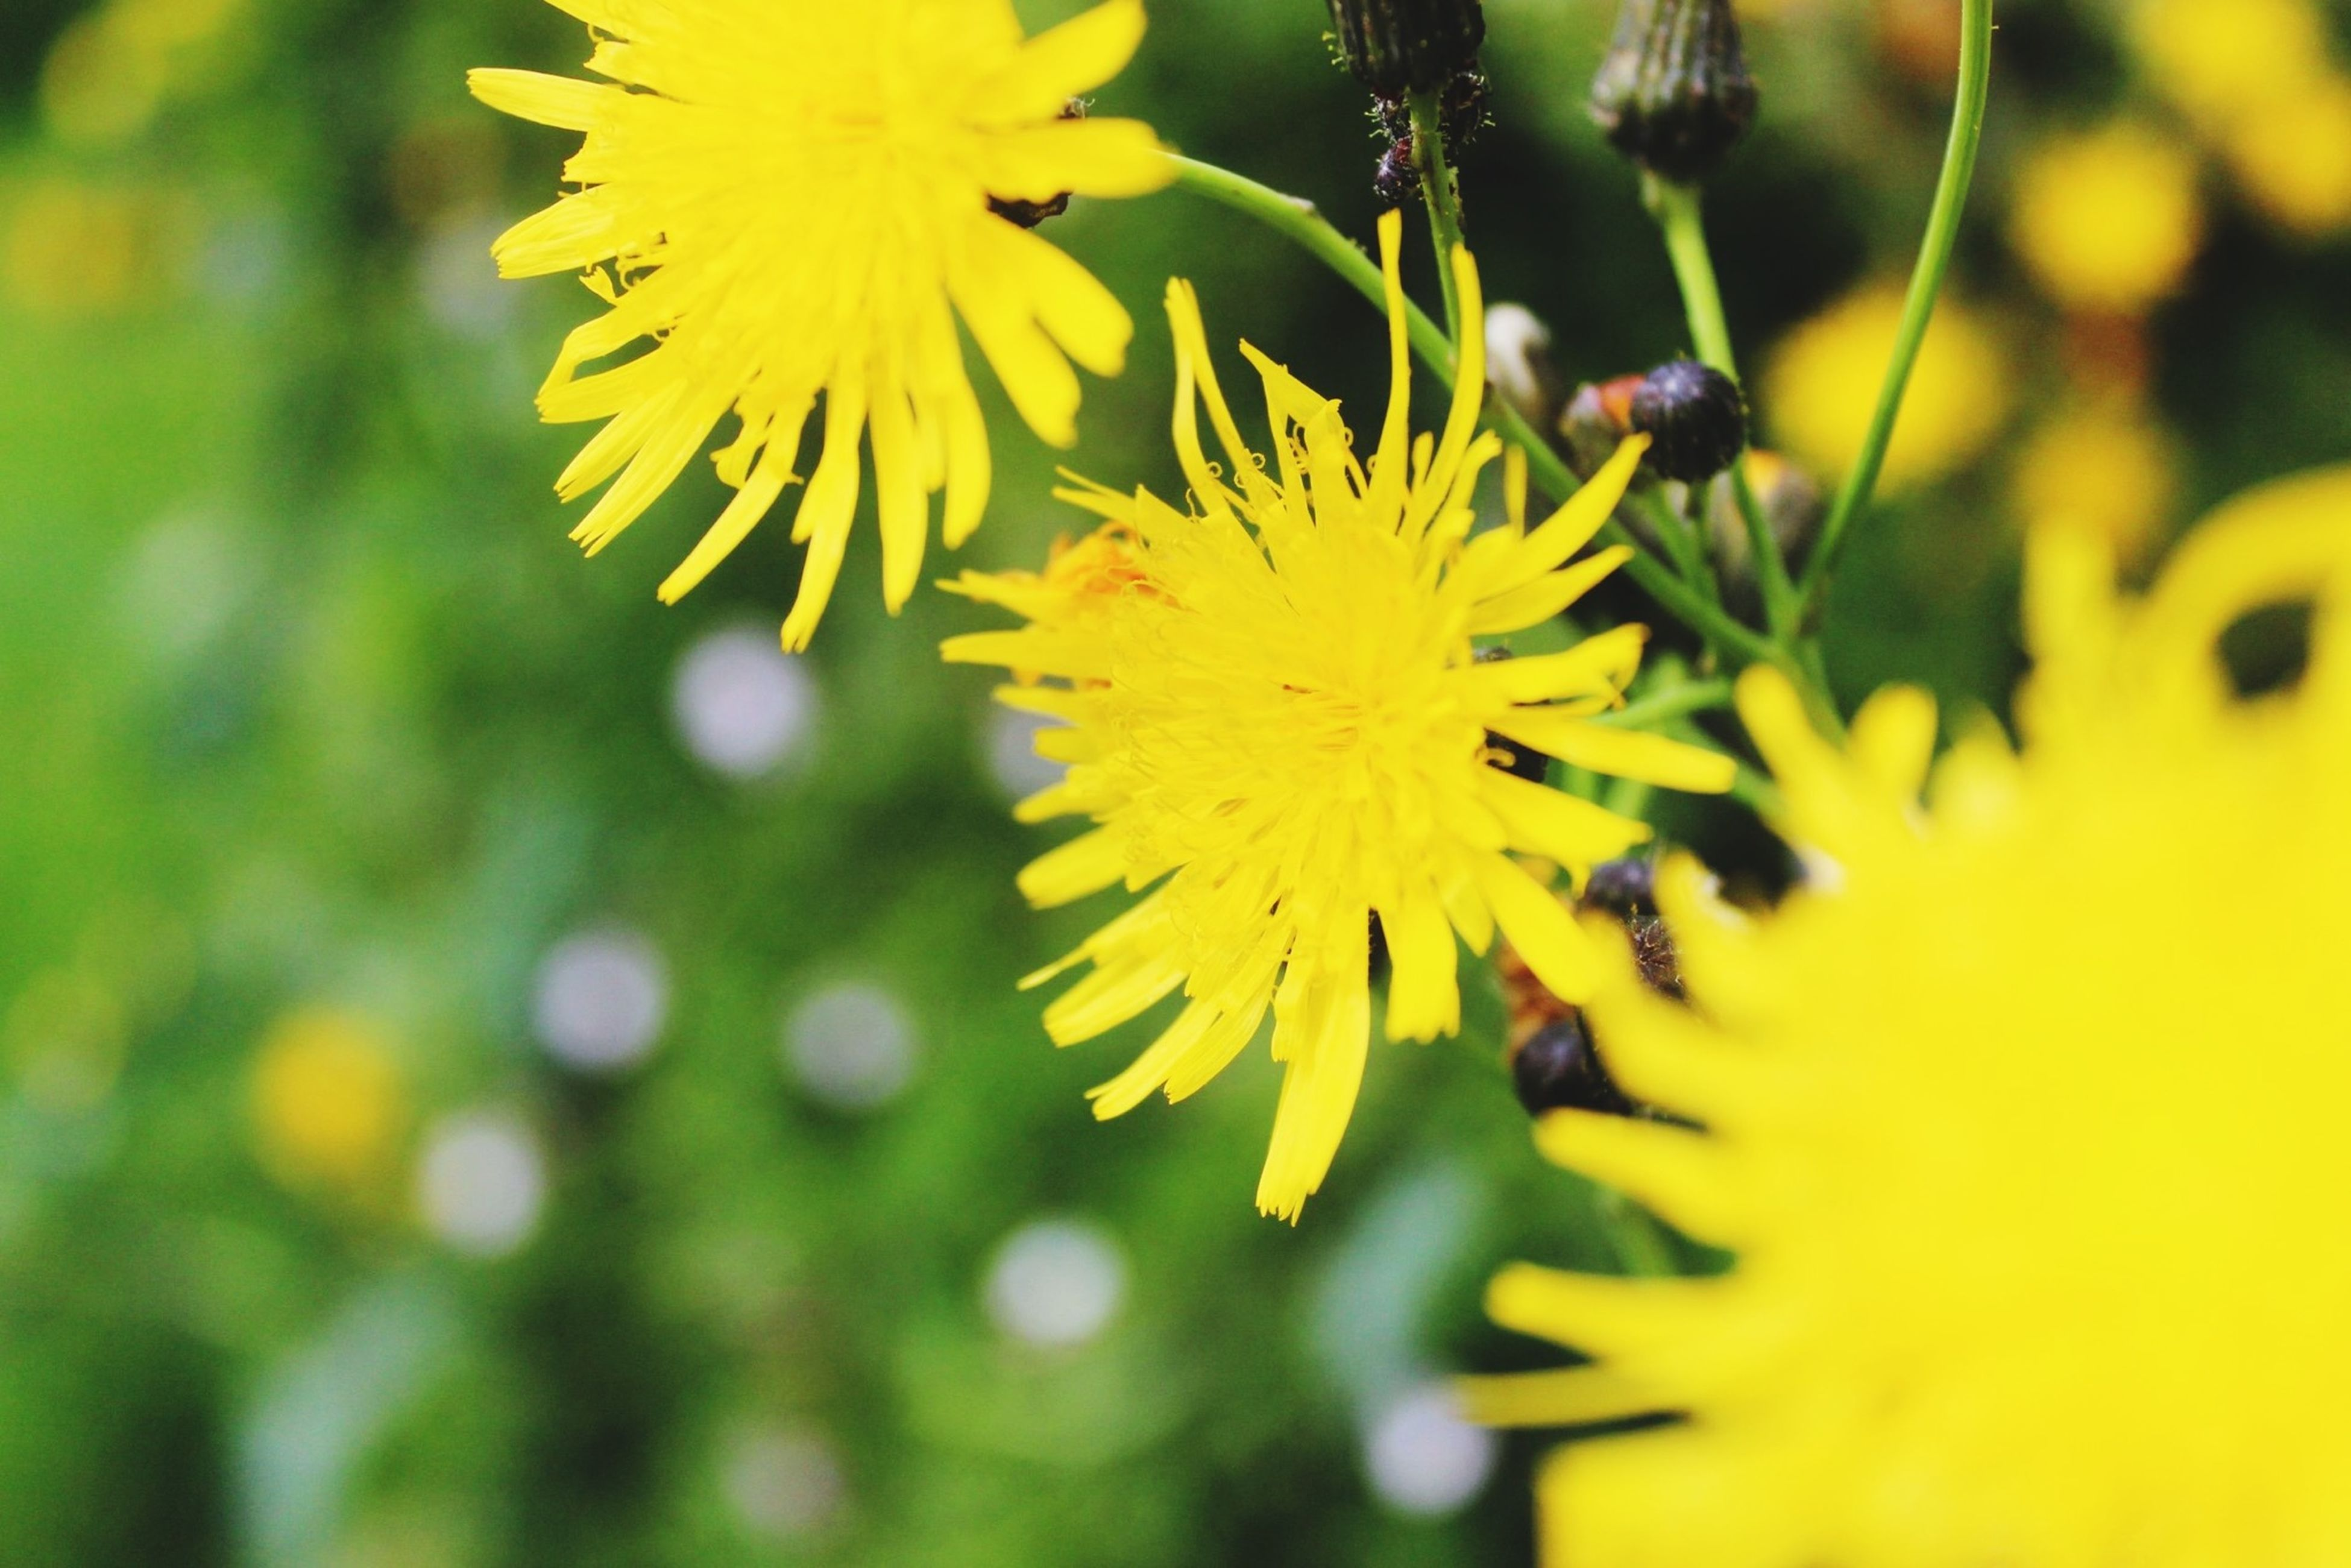 flower, yellow, freshness, growth, fragility, petal, beauty in nature, flower head, focus on foreground, close-up, nature, blooming, plant, in bloom, selective focus, day, outdoors, blossom, park - man made space, botany